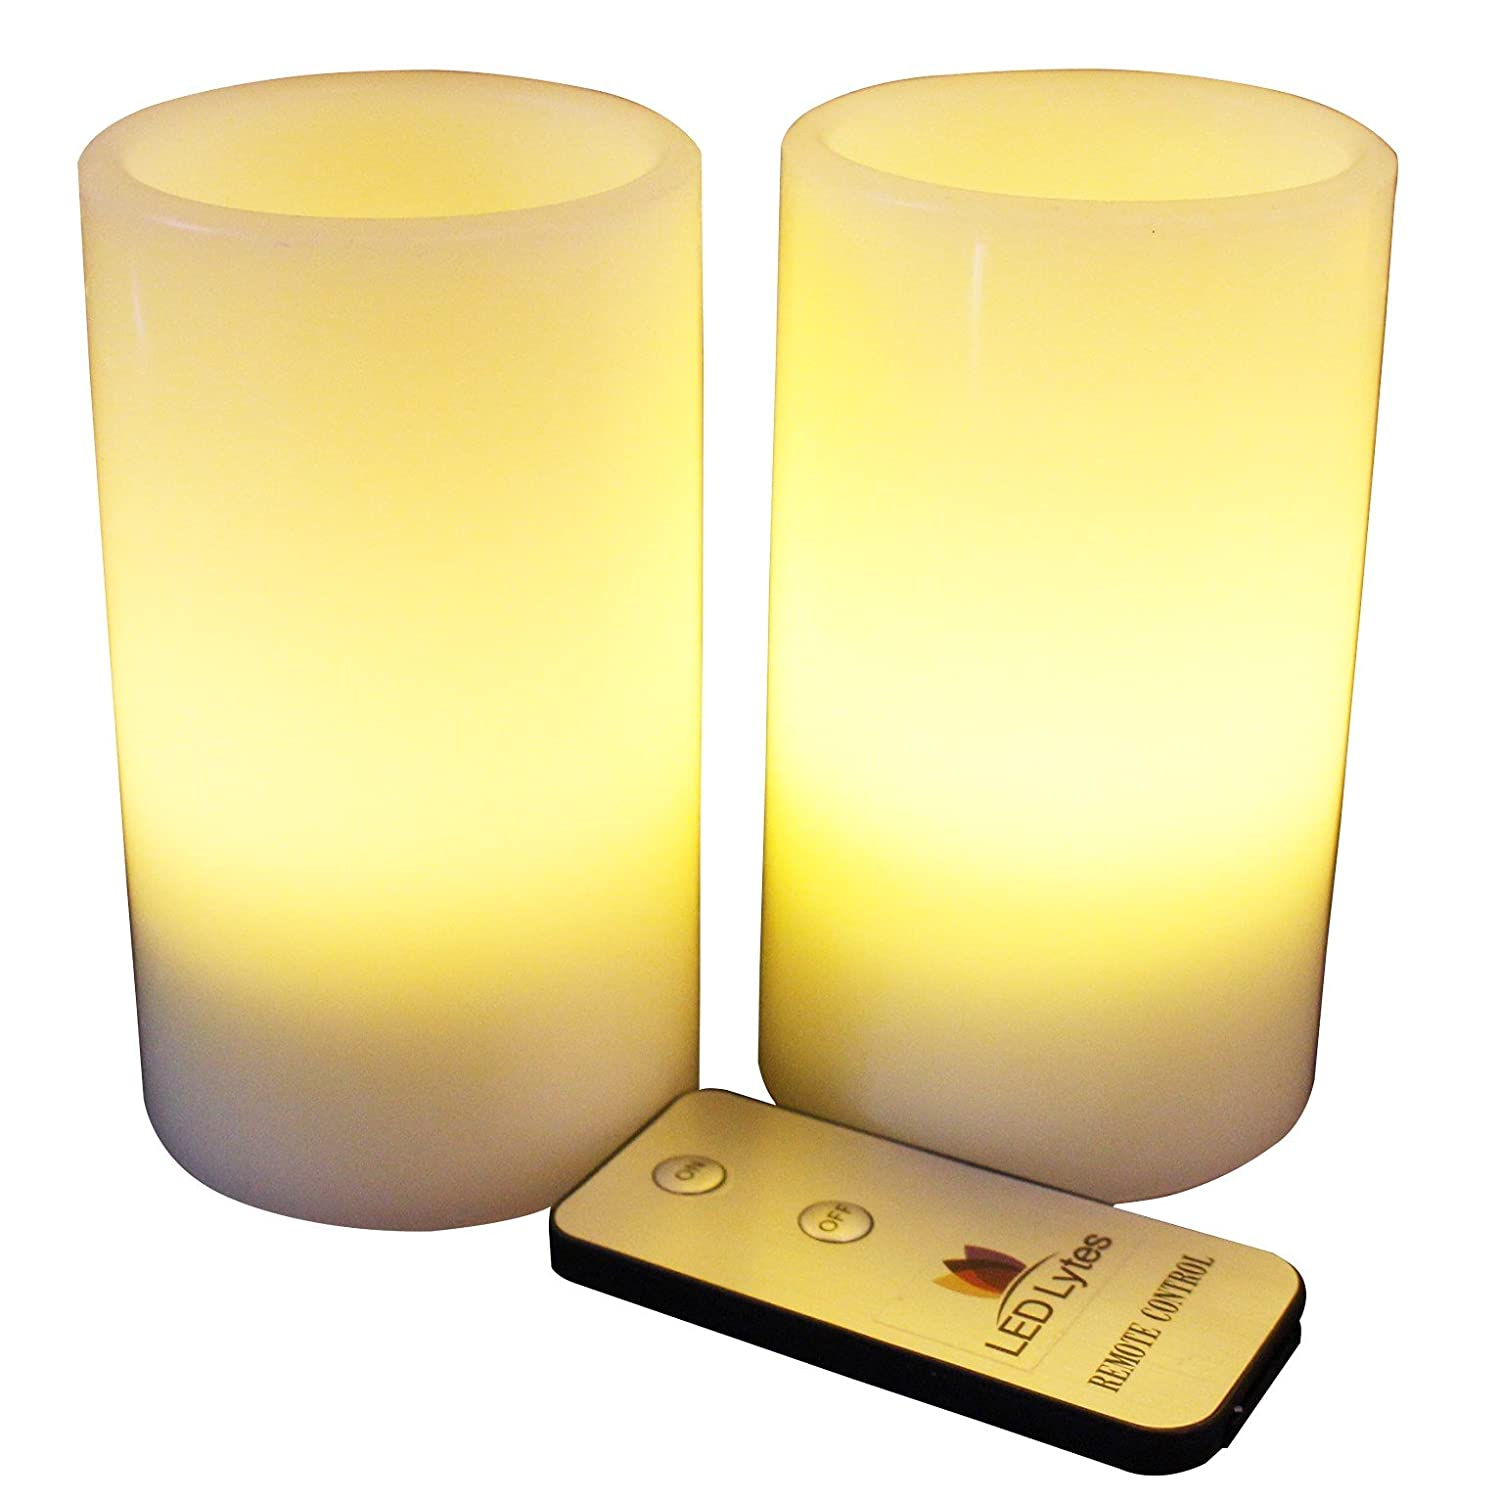 led lytes flameless candles battery operated pillars w remote set of 2 ivory wa ebay. Black Bedroom Furniture Sets. Home Design Ideas